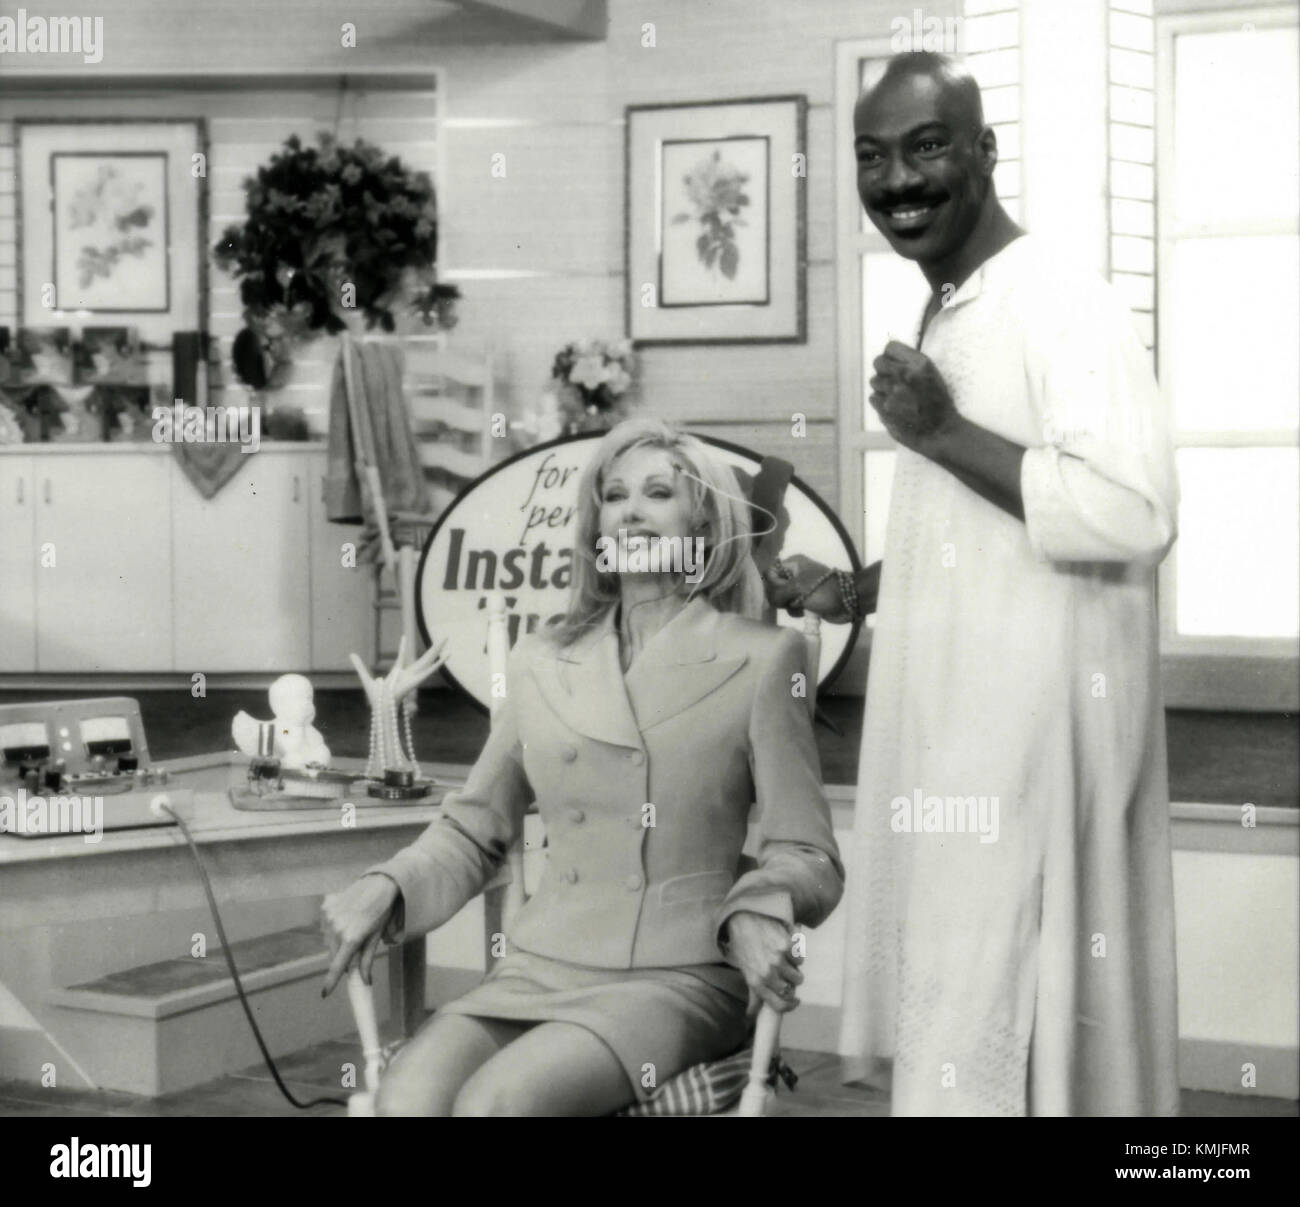 Actors Eddie Murphy and Morgan Fairchild in the movie Holy Man, 1998 - Stock Image